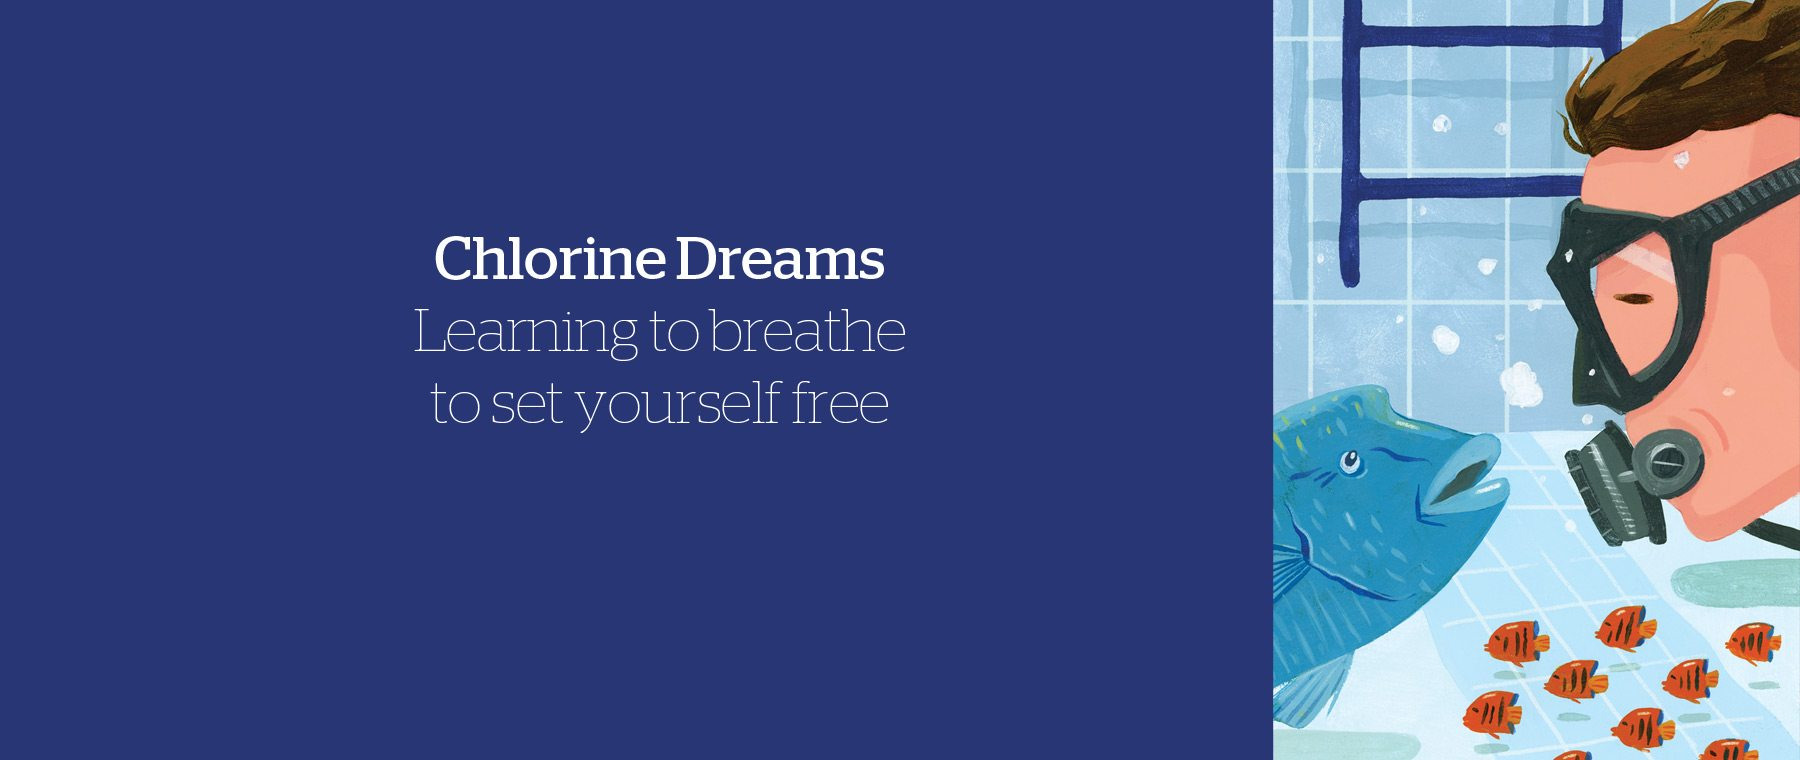 Chlorine Dreams: Learning to breathe to set yourself free